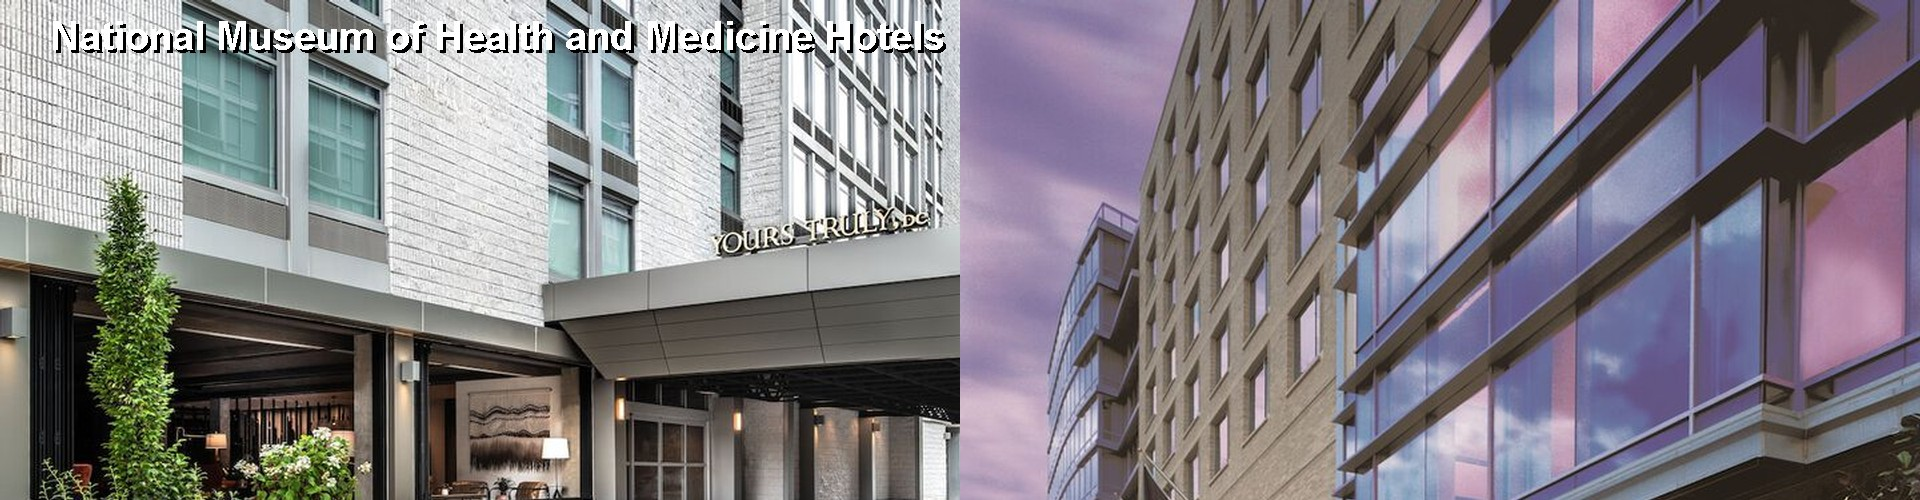 5 Best Hotels near National Museum of Health and Medicine